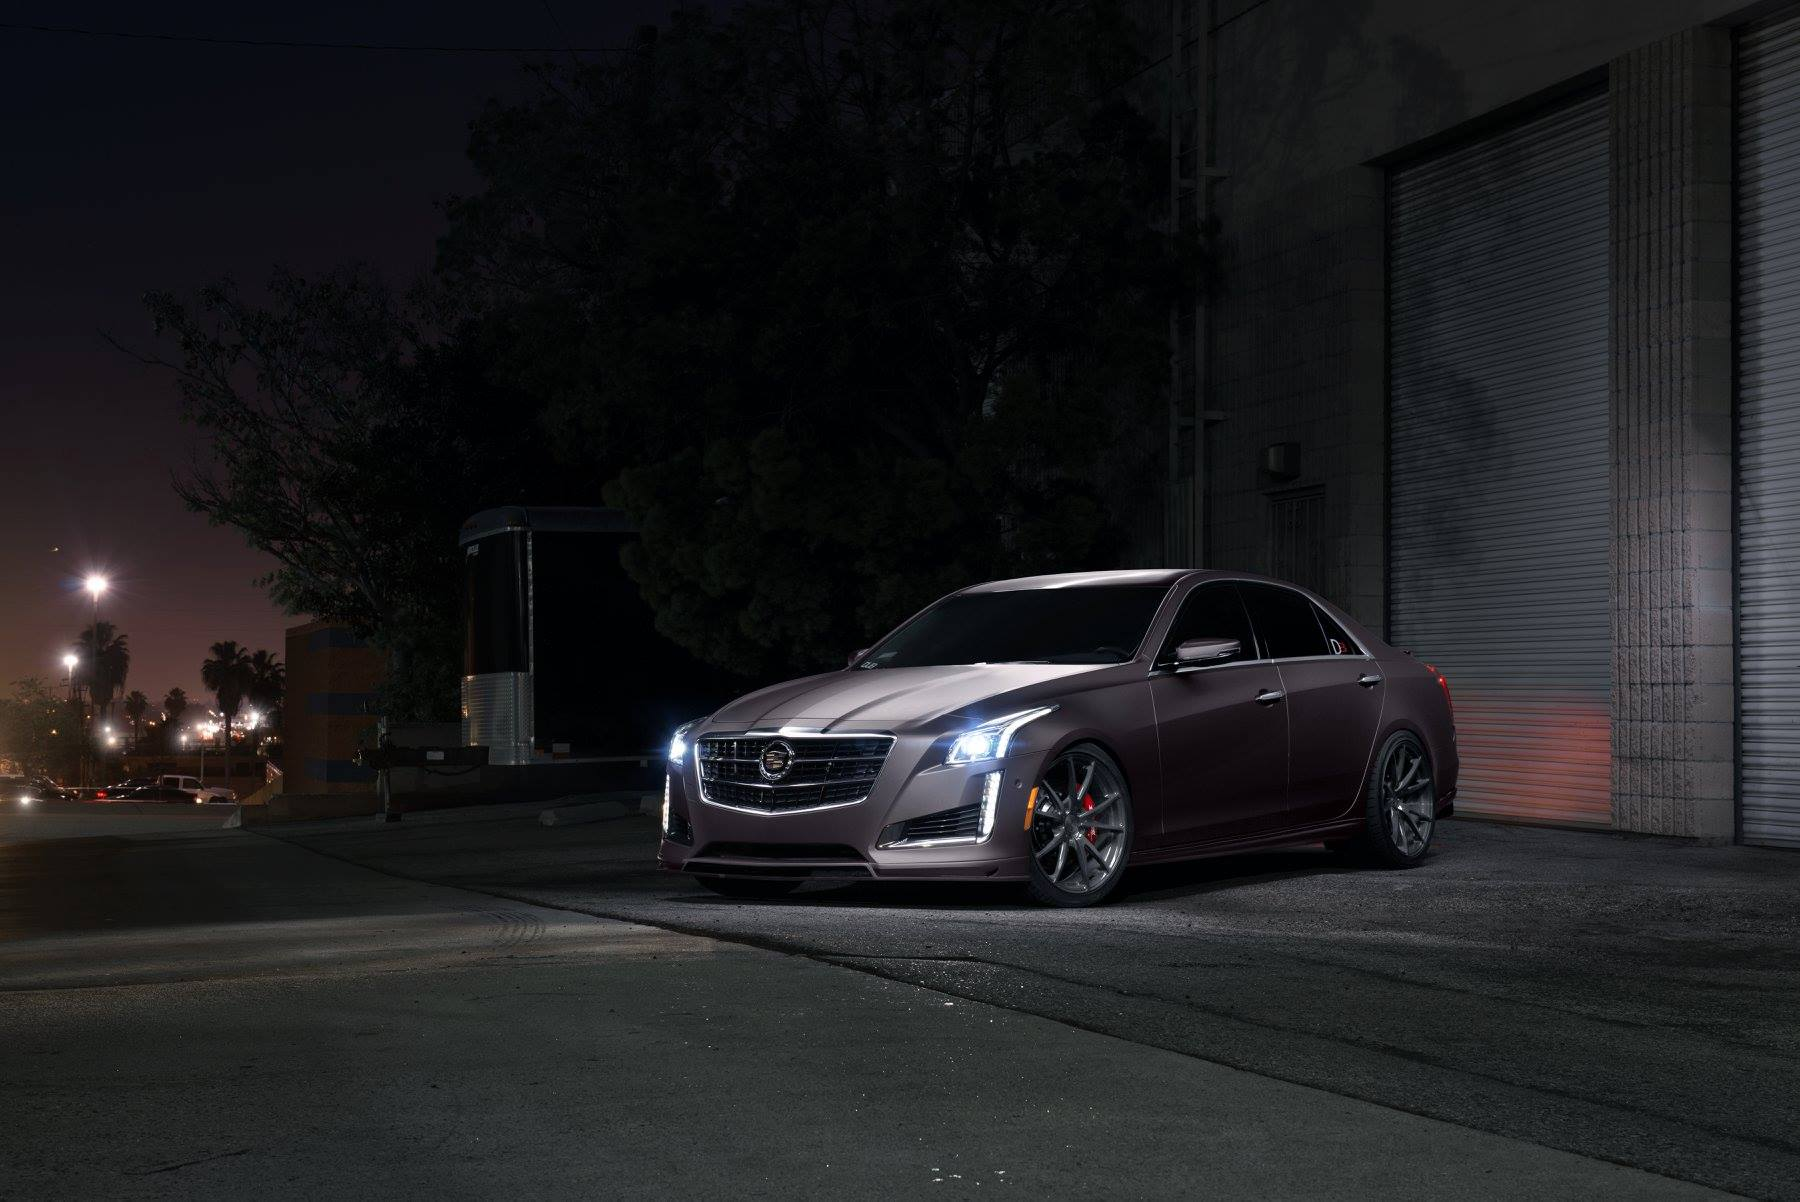 Cadillac CTS V Sport Is Not Just Another Regular Car, It Is A Real Example  Of A Perfect Car In All Meanings. The Aggressive Design Philosophy Of The  CTS ...